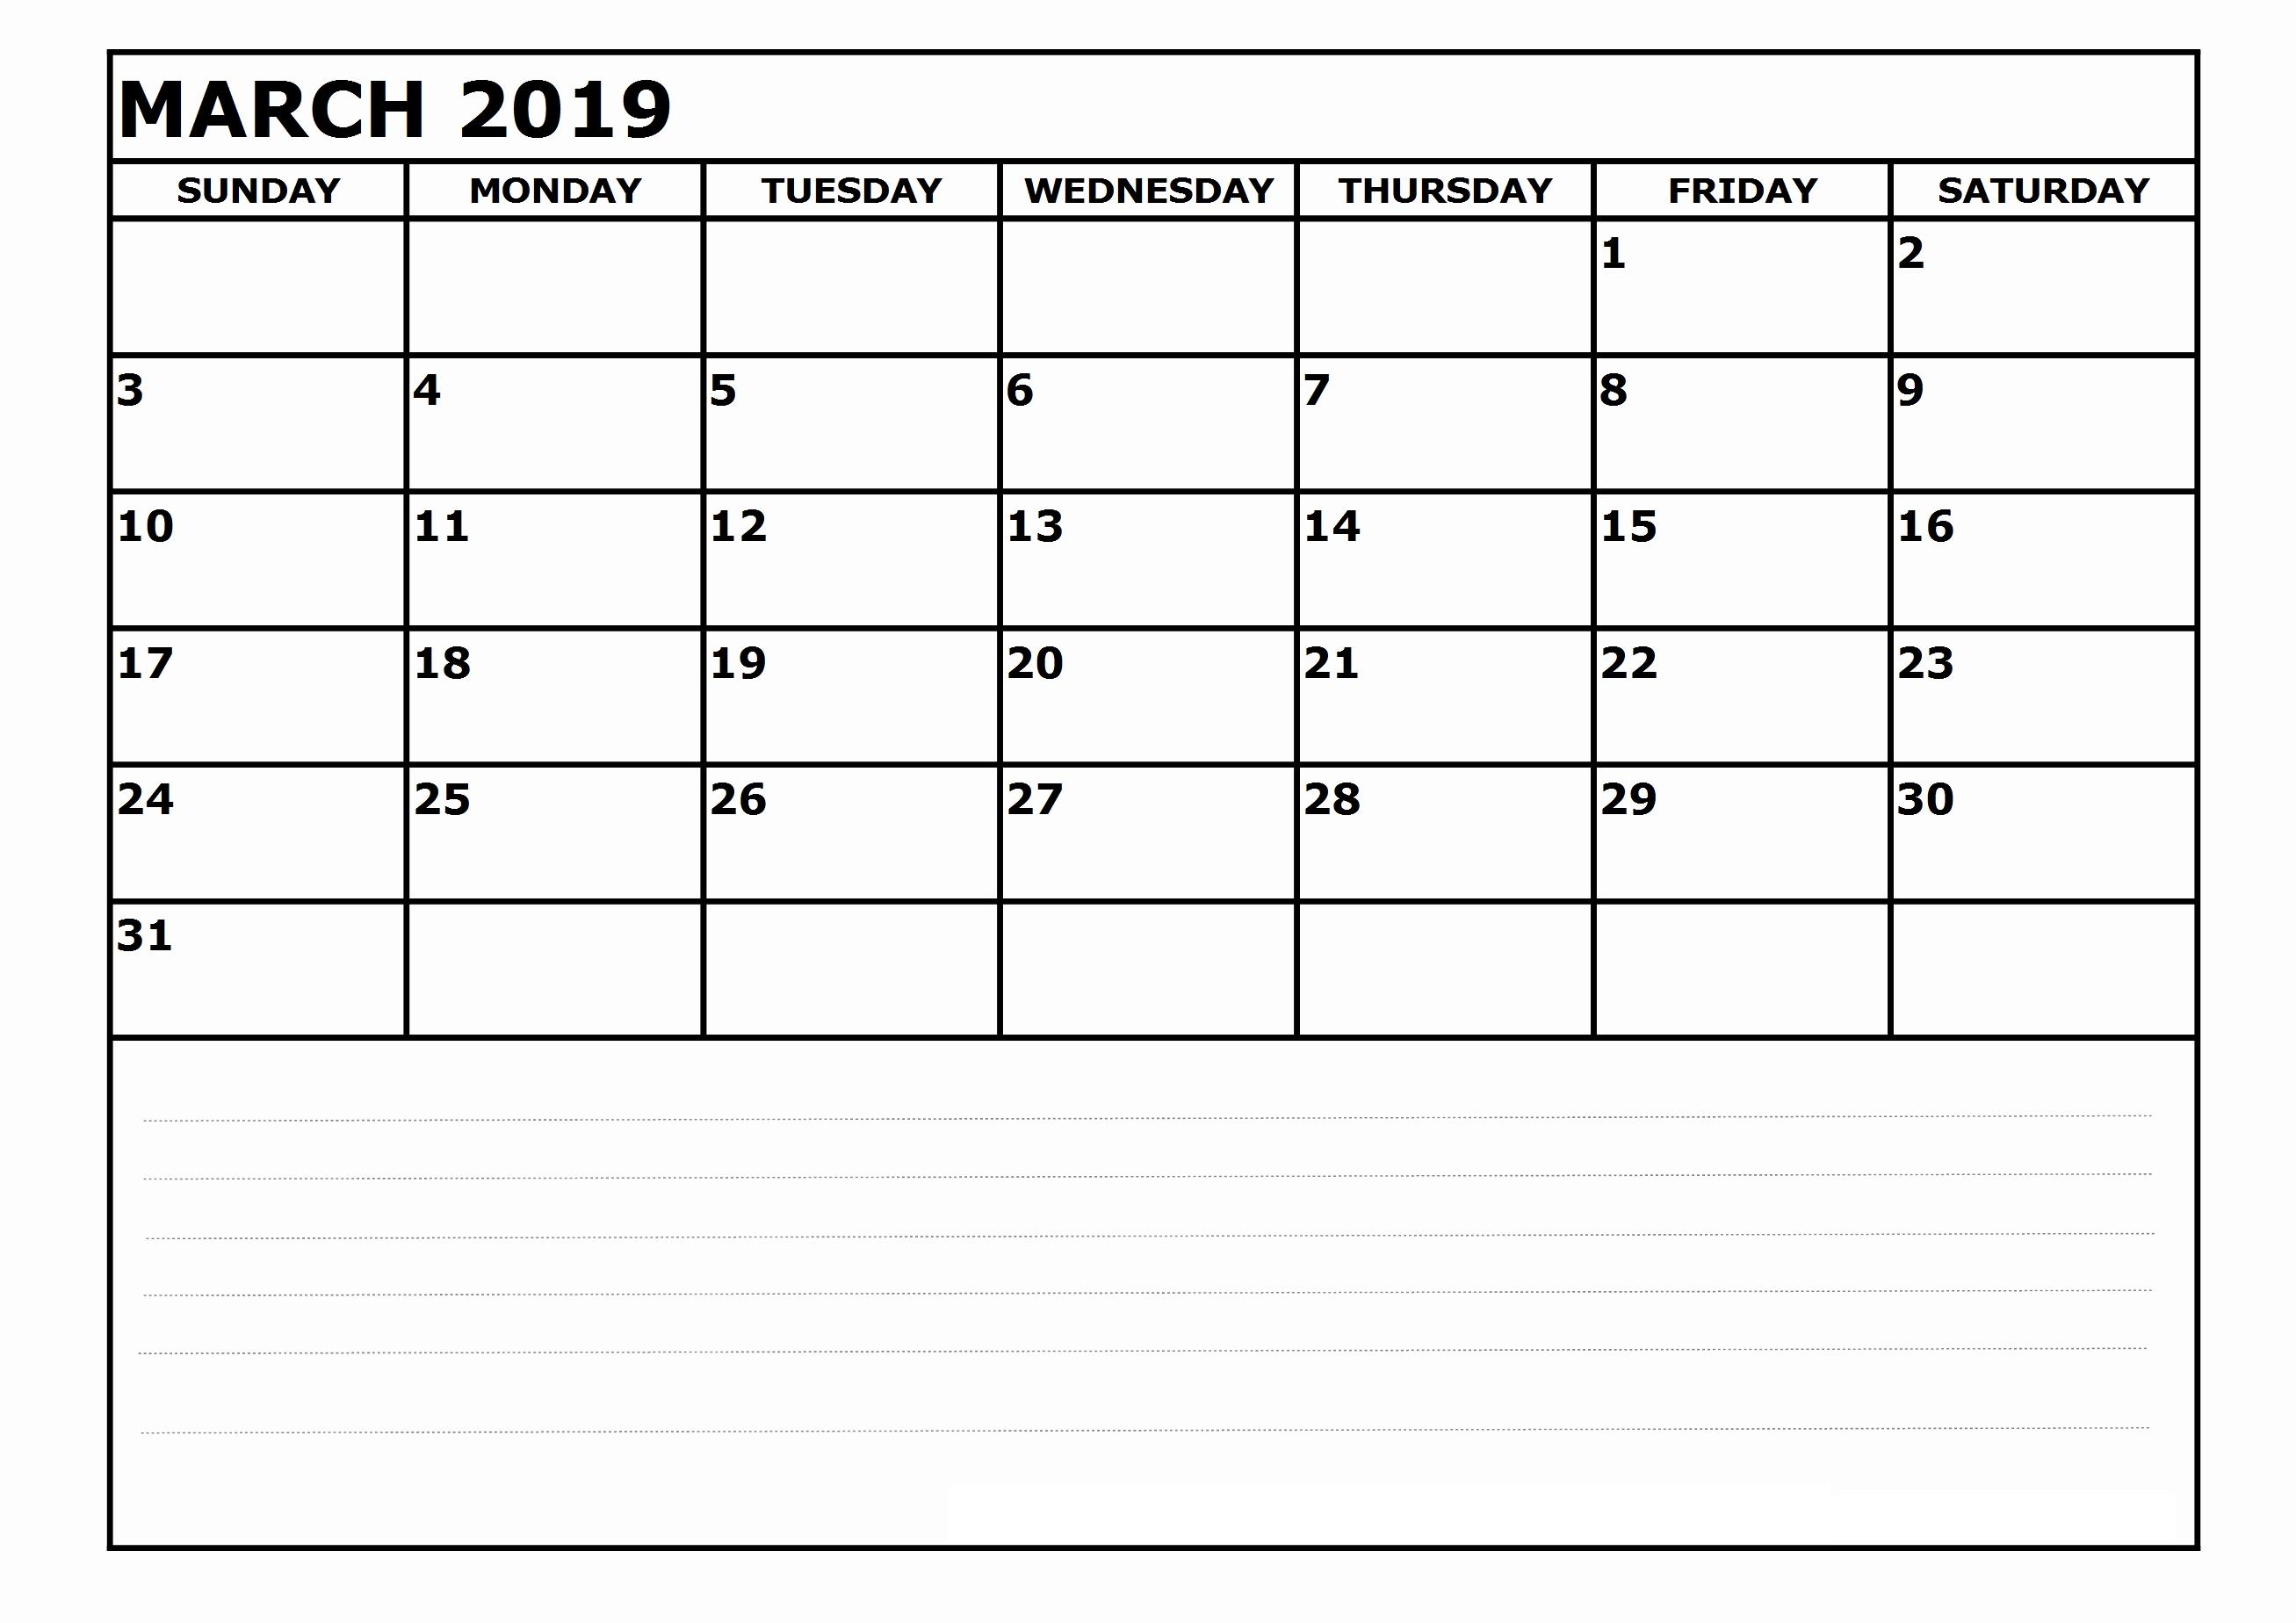 march 2019 calendar printable pdf free download